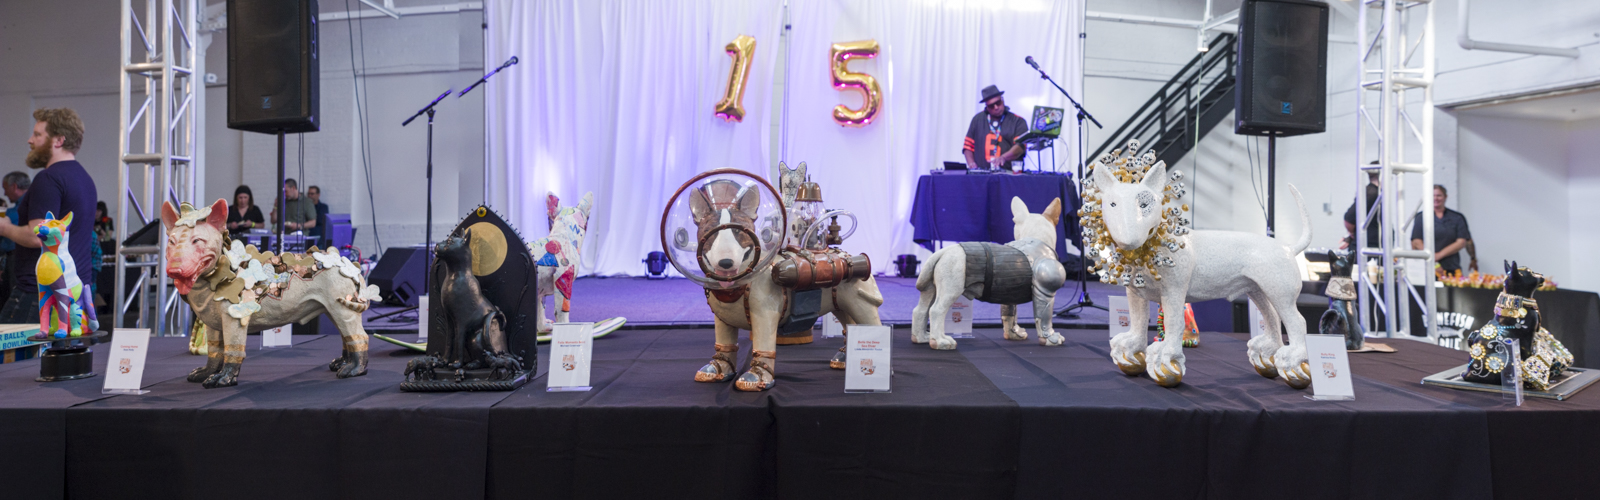 15th Annual Art Fur Animals Auction - Friends of the Cleveland Kennel Benefit <span class=&apos;image-credits&apos;>Bob Perkoski</span>